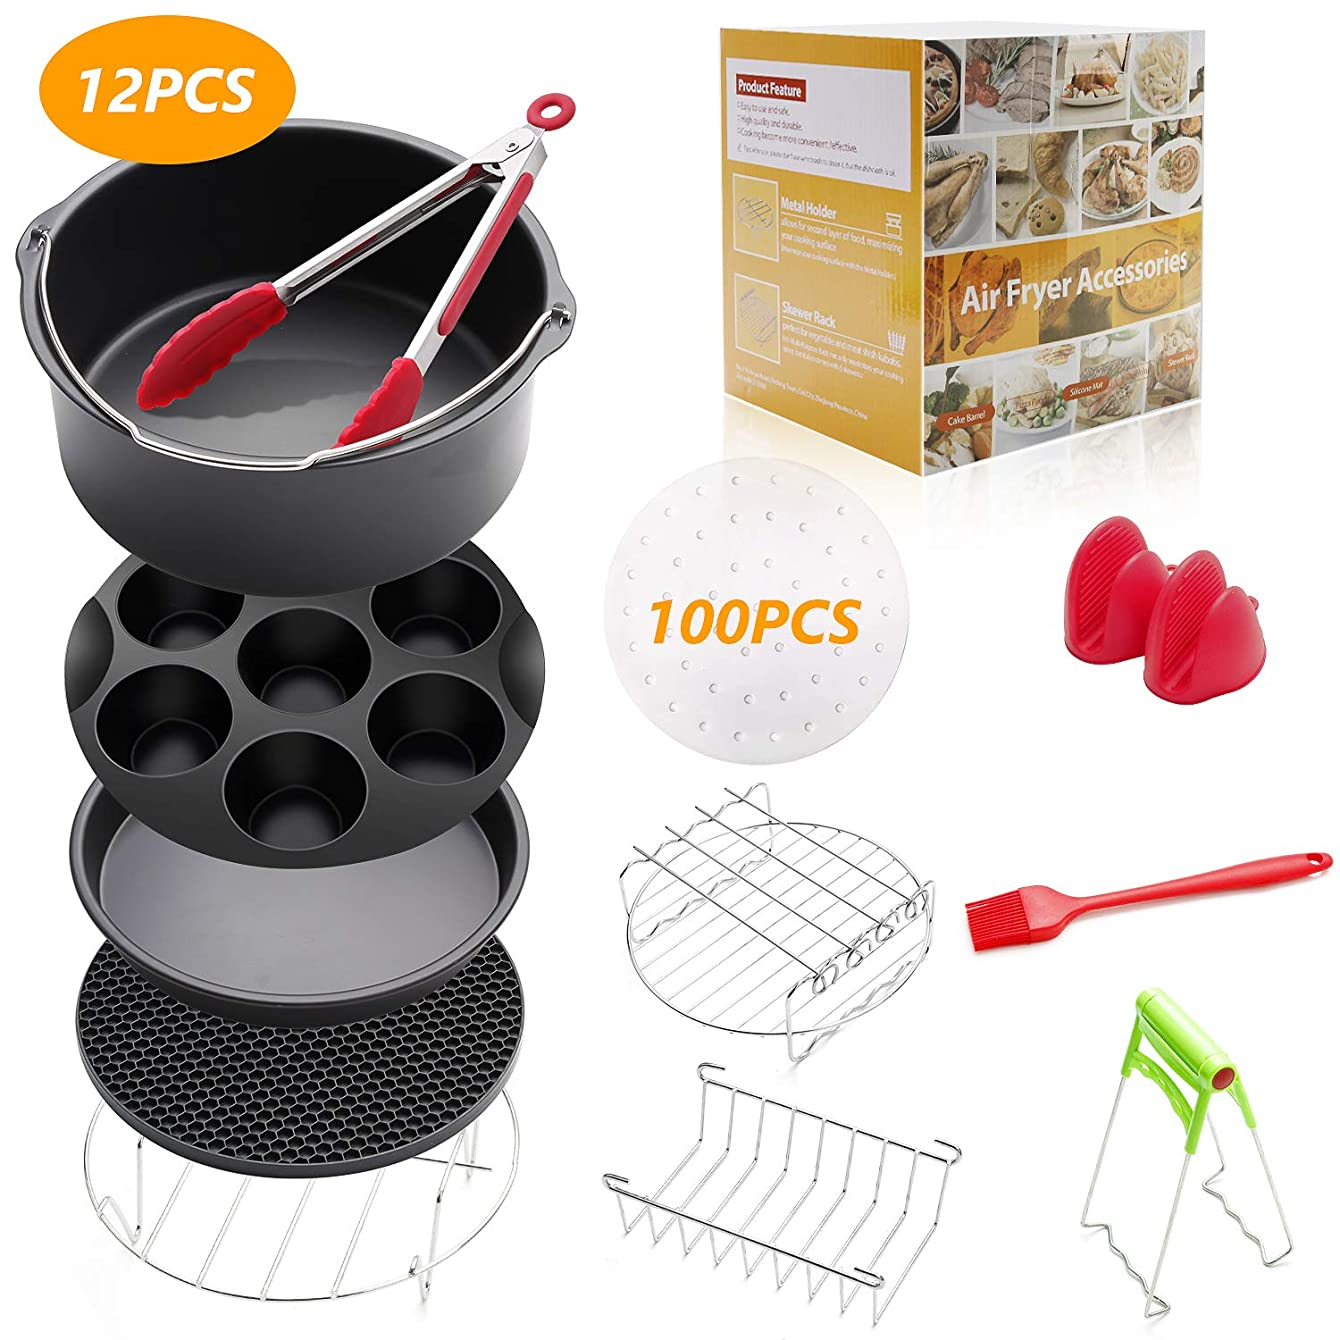 8 inch Air Fryer Accessories 12 Pcs for Gowise Phillips Cozyna Airfryer XL 4.2QT-5.8QT, Deep Fryer Accessories Set of 12 pactdwxgwlibt61